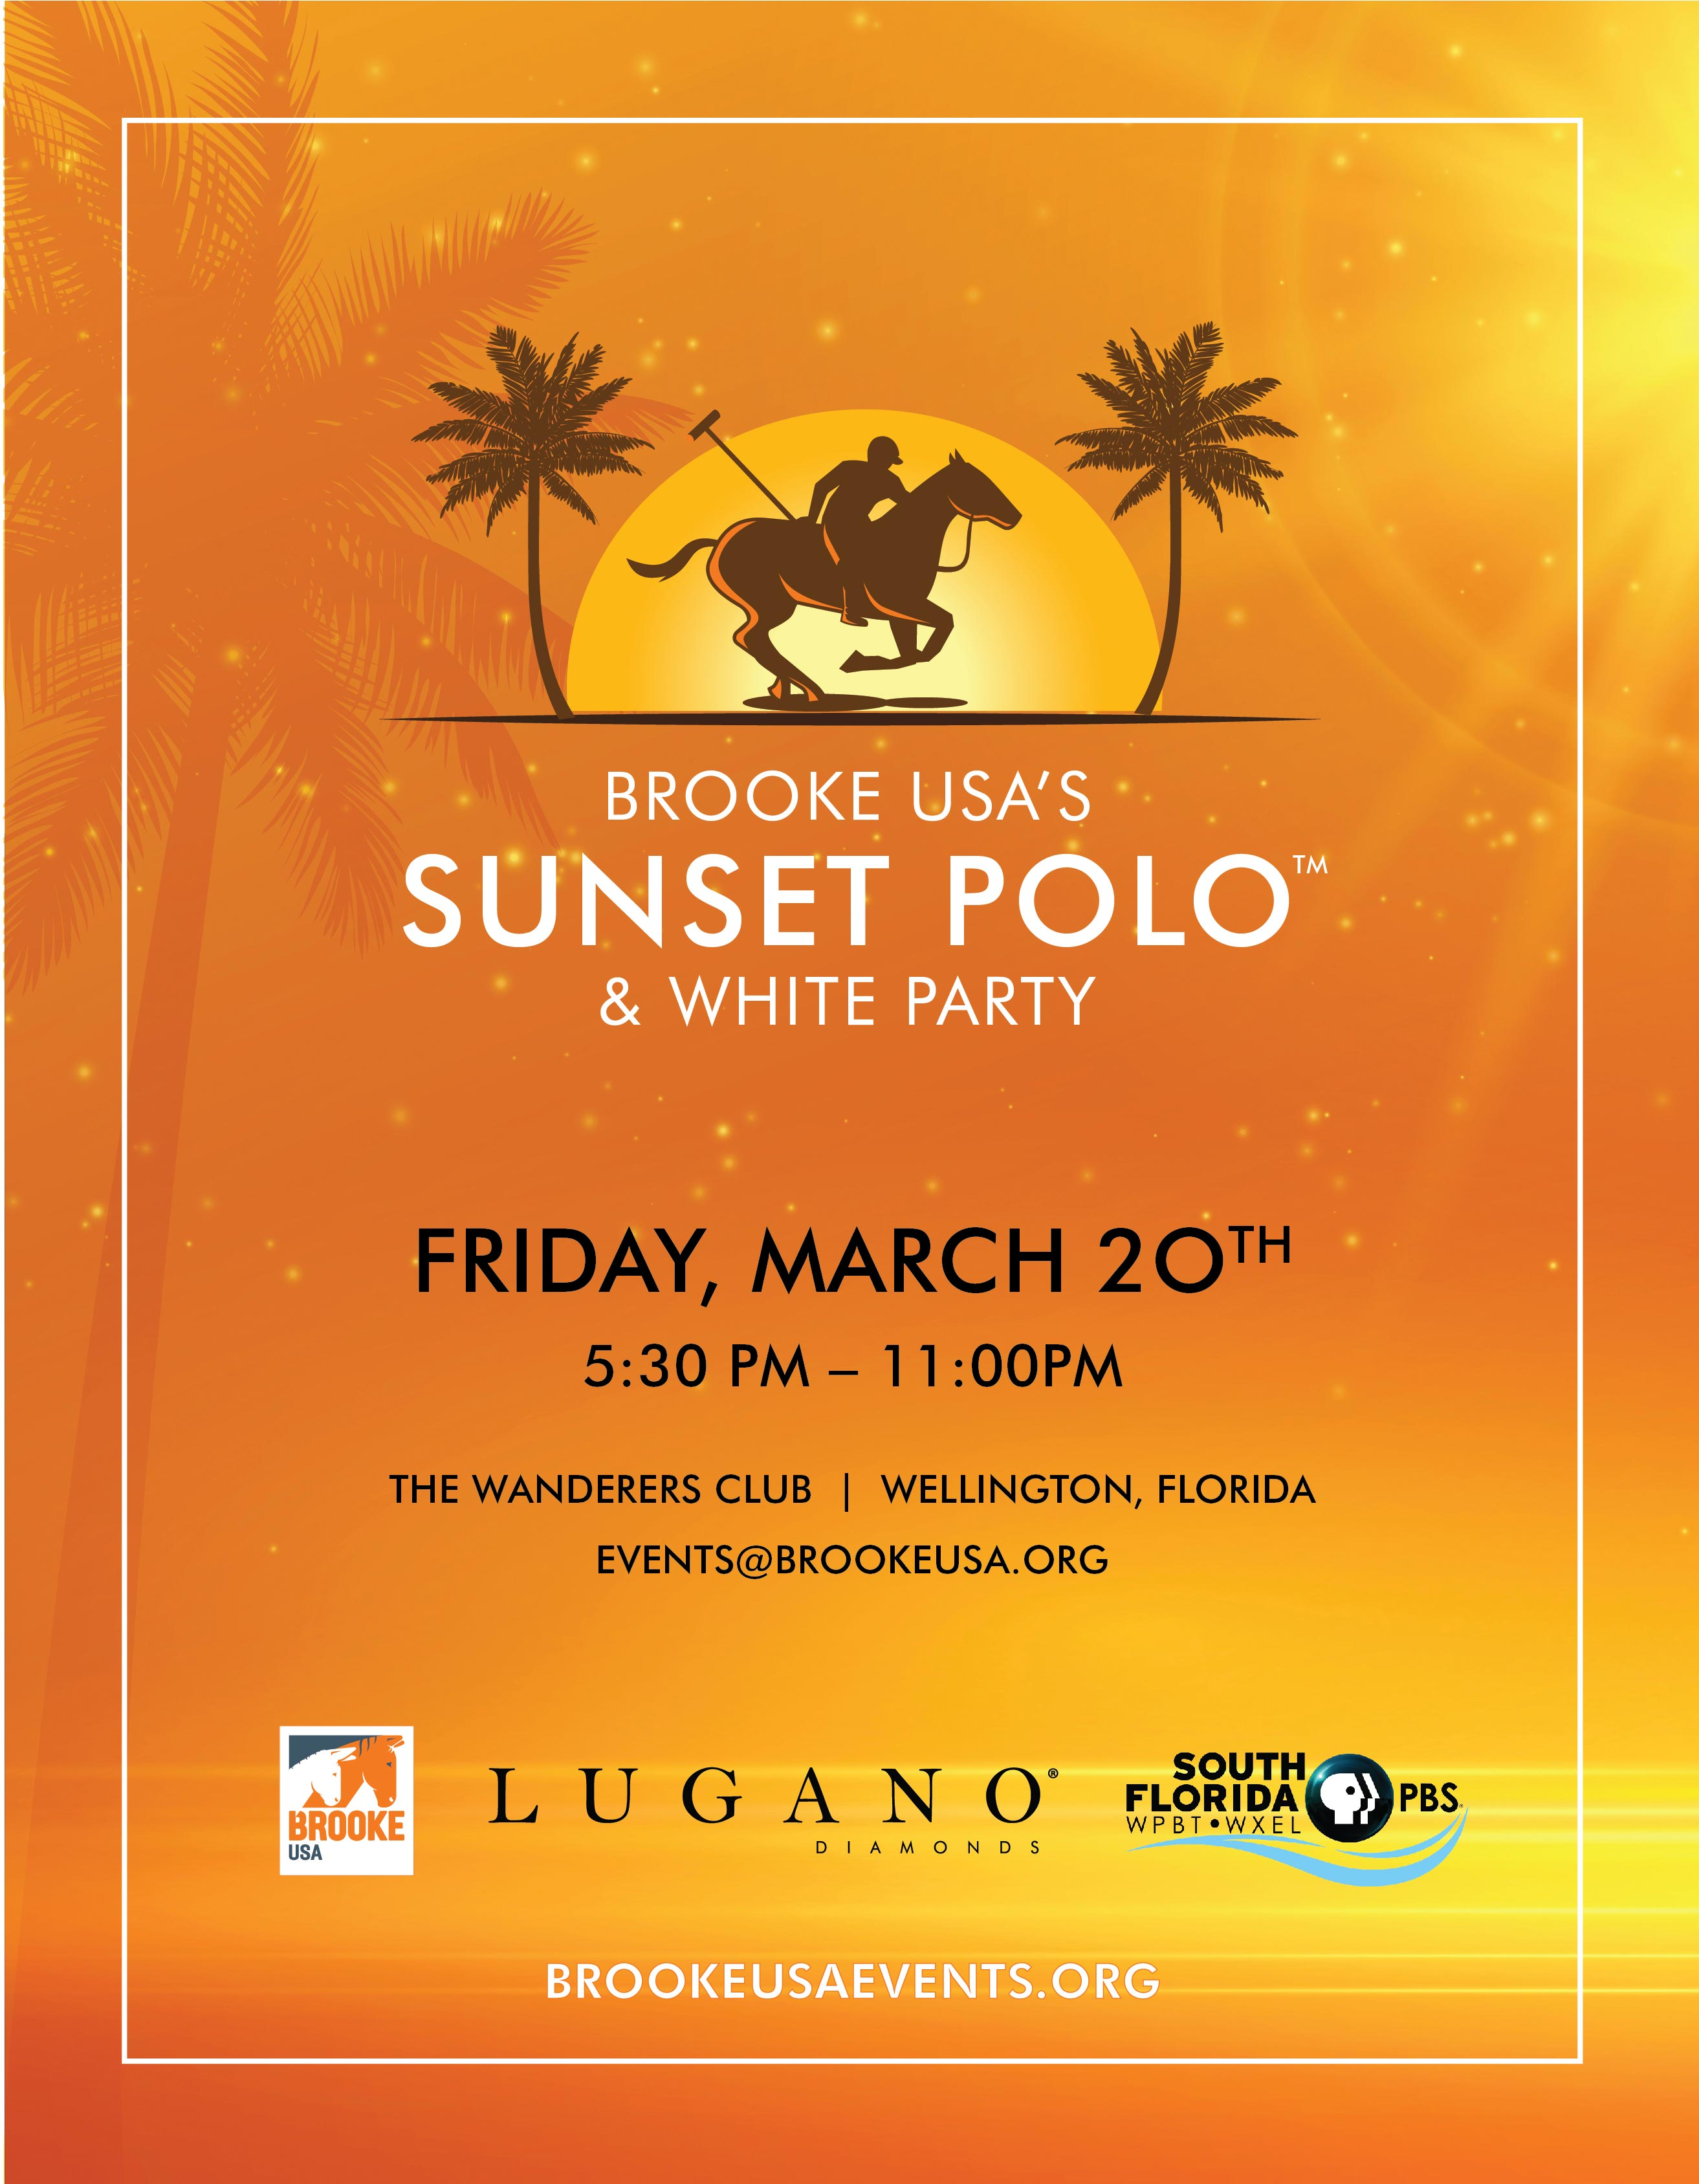 Save the Date - Sunset Polo & White Party